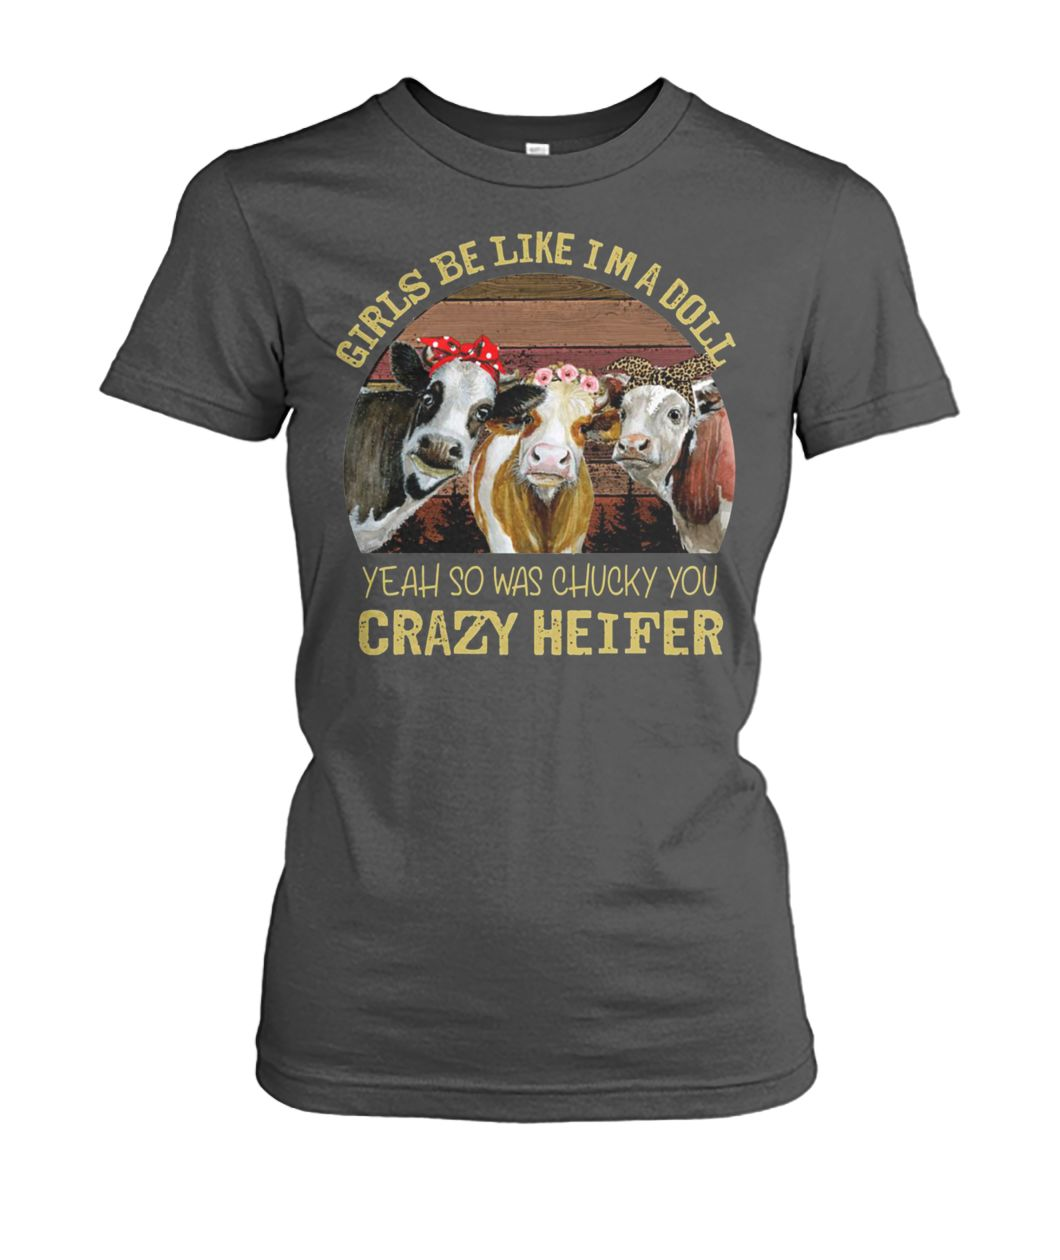 Girls be like I'm a doll yeah so was chucky you crazy heifer women's crew tee